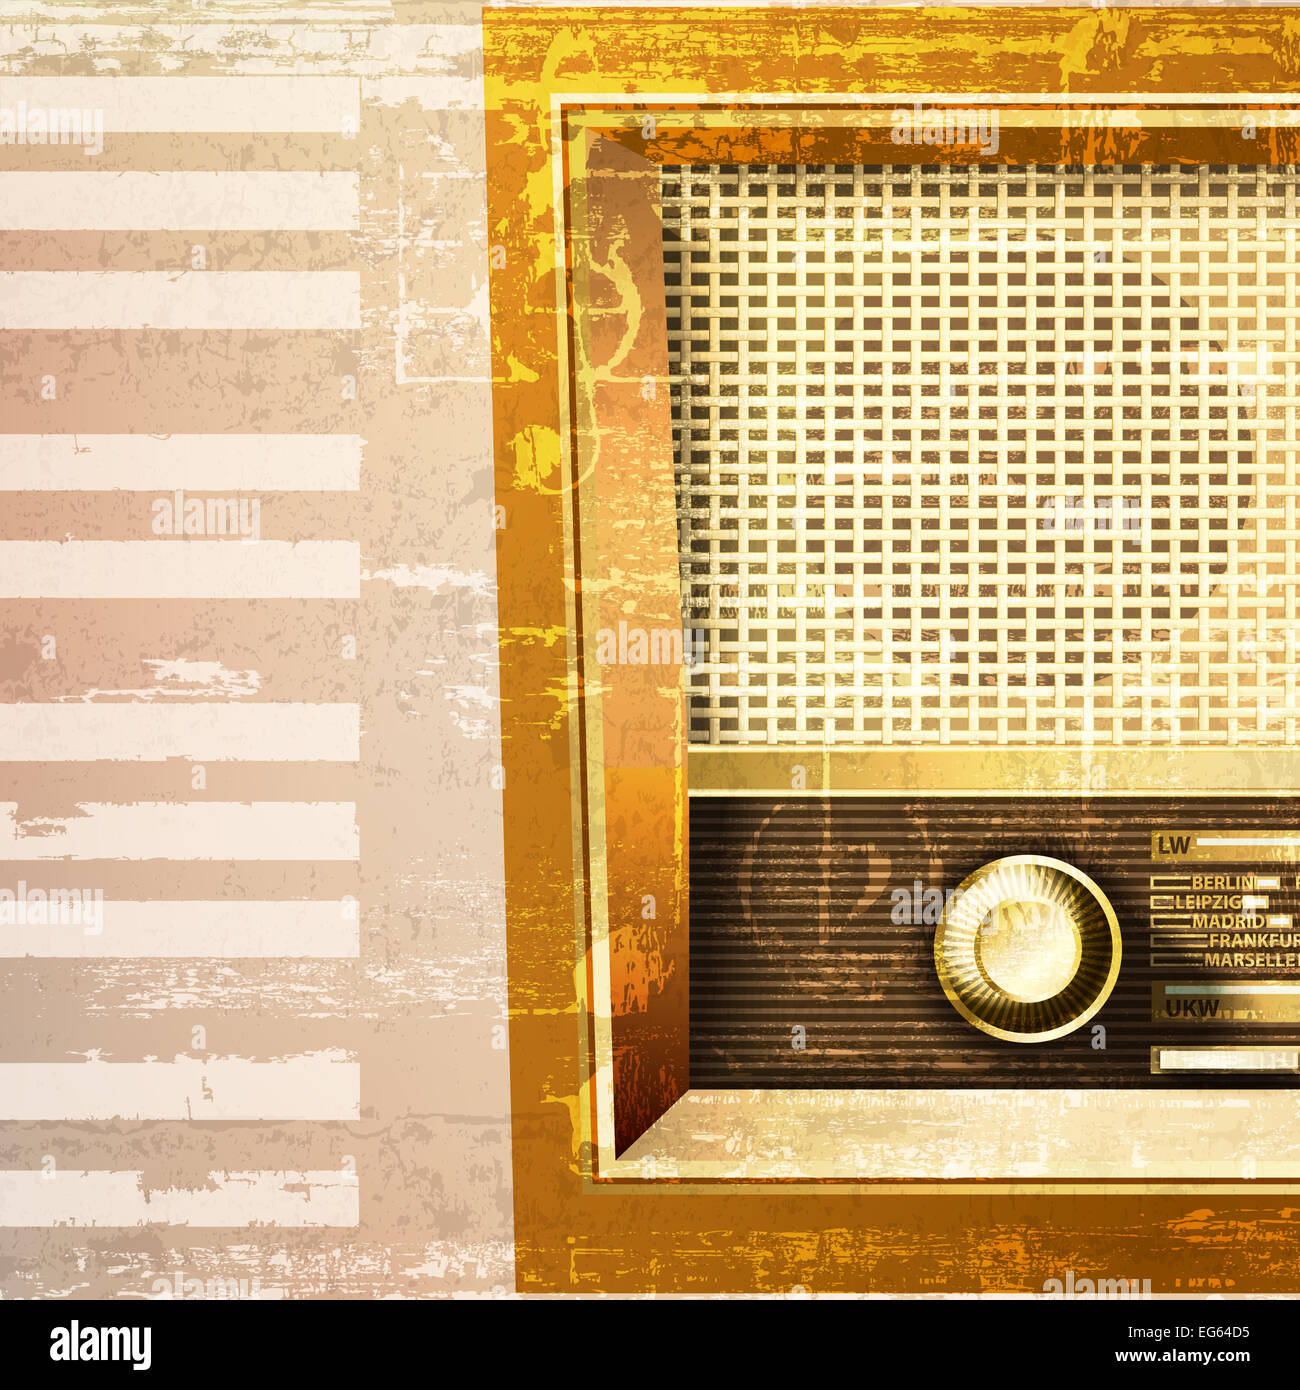 abstract beige grunge piano background with retro radio - Stock Image